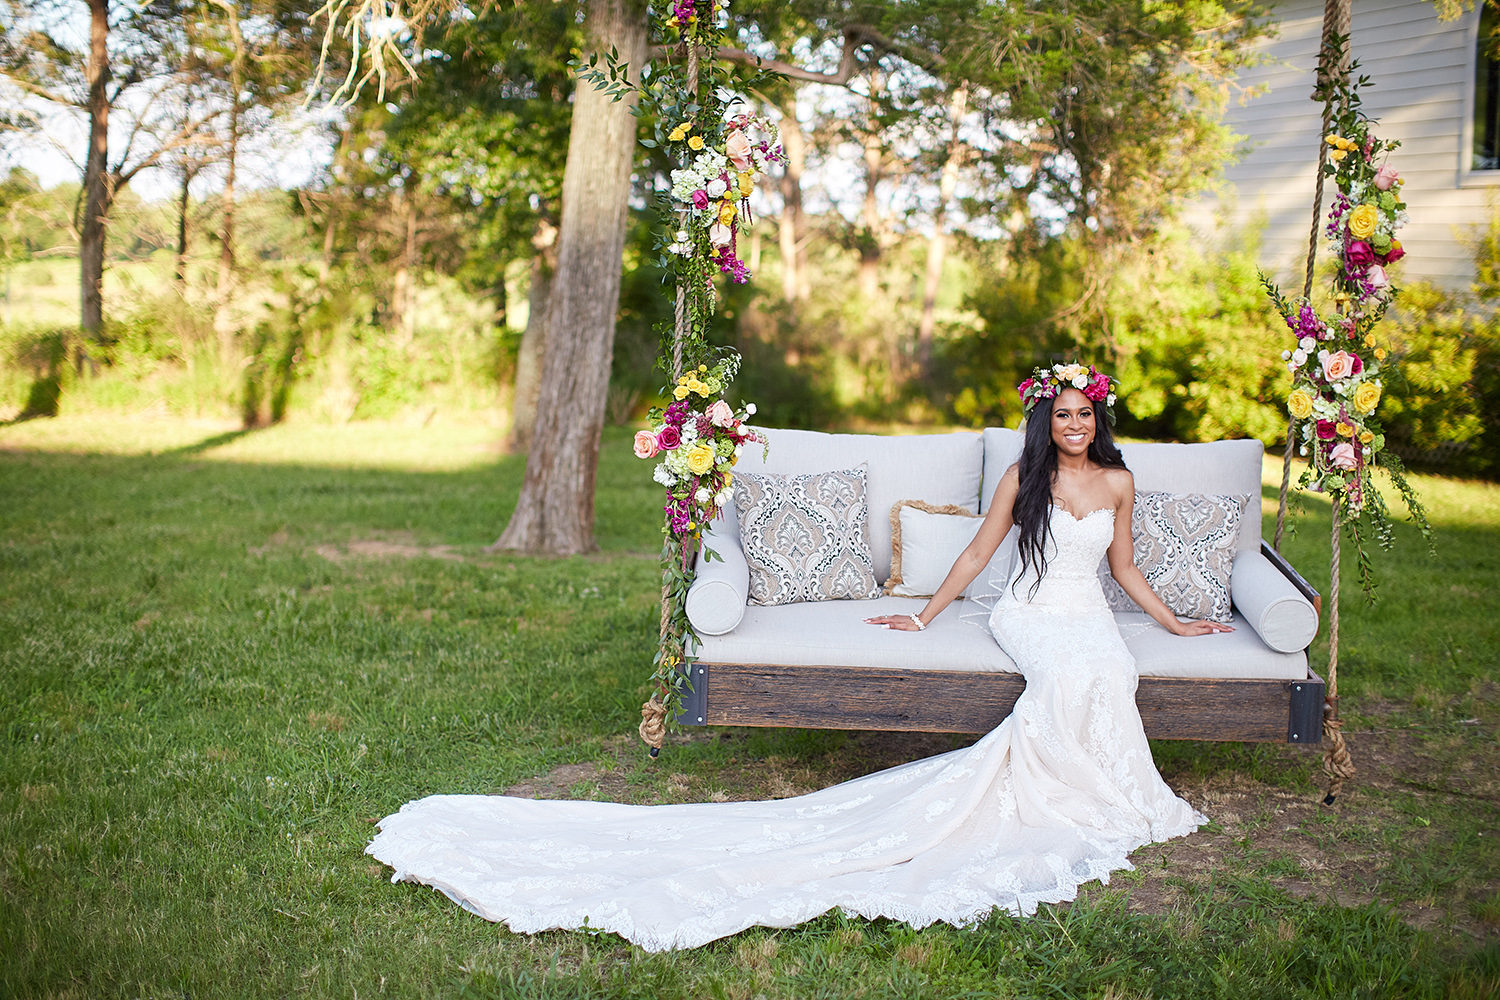 Houston Florist - Wedding Flowers - Boho Chic